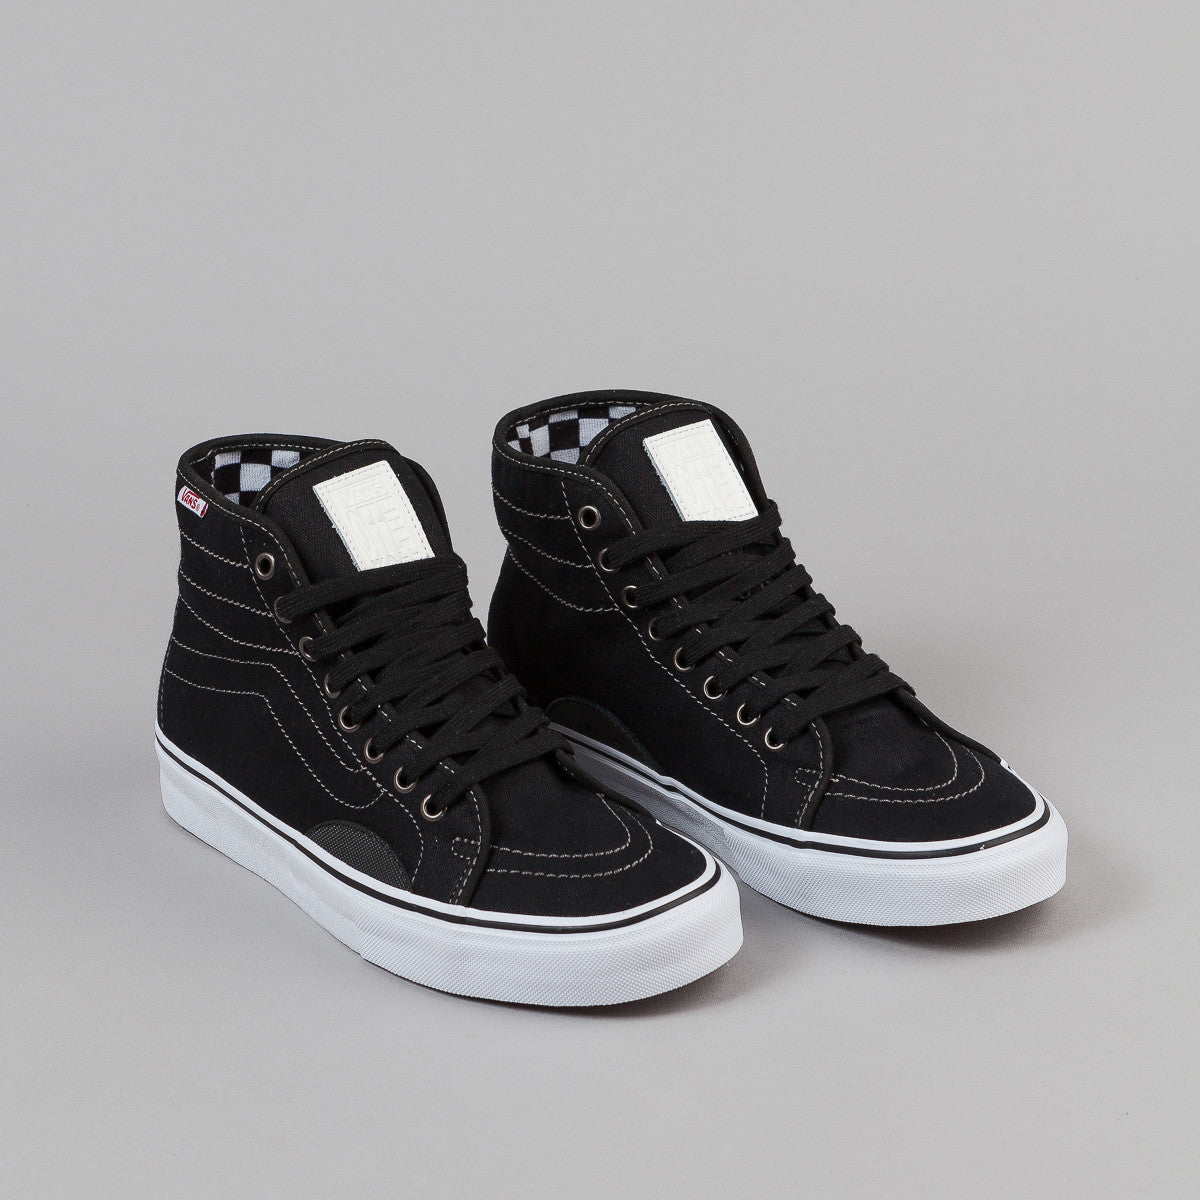 Vans AV Classic High Shoes - Herringbone Black / White